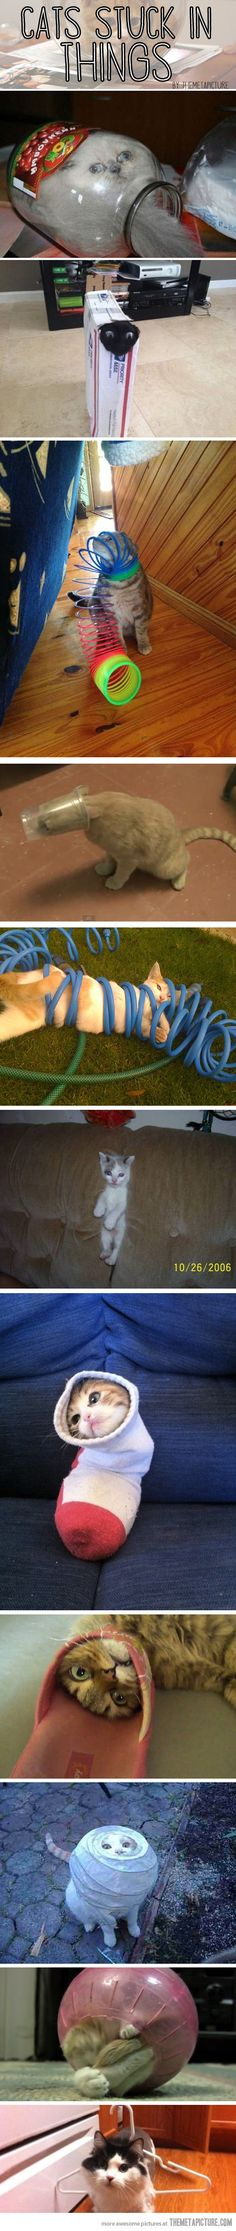 Cats stuck in things.... Oooh so cute!